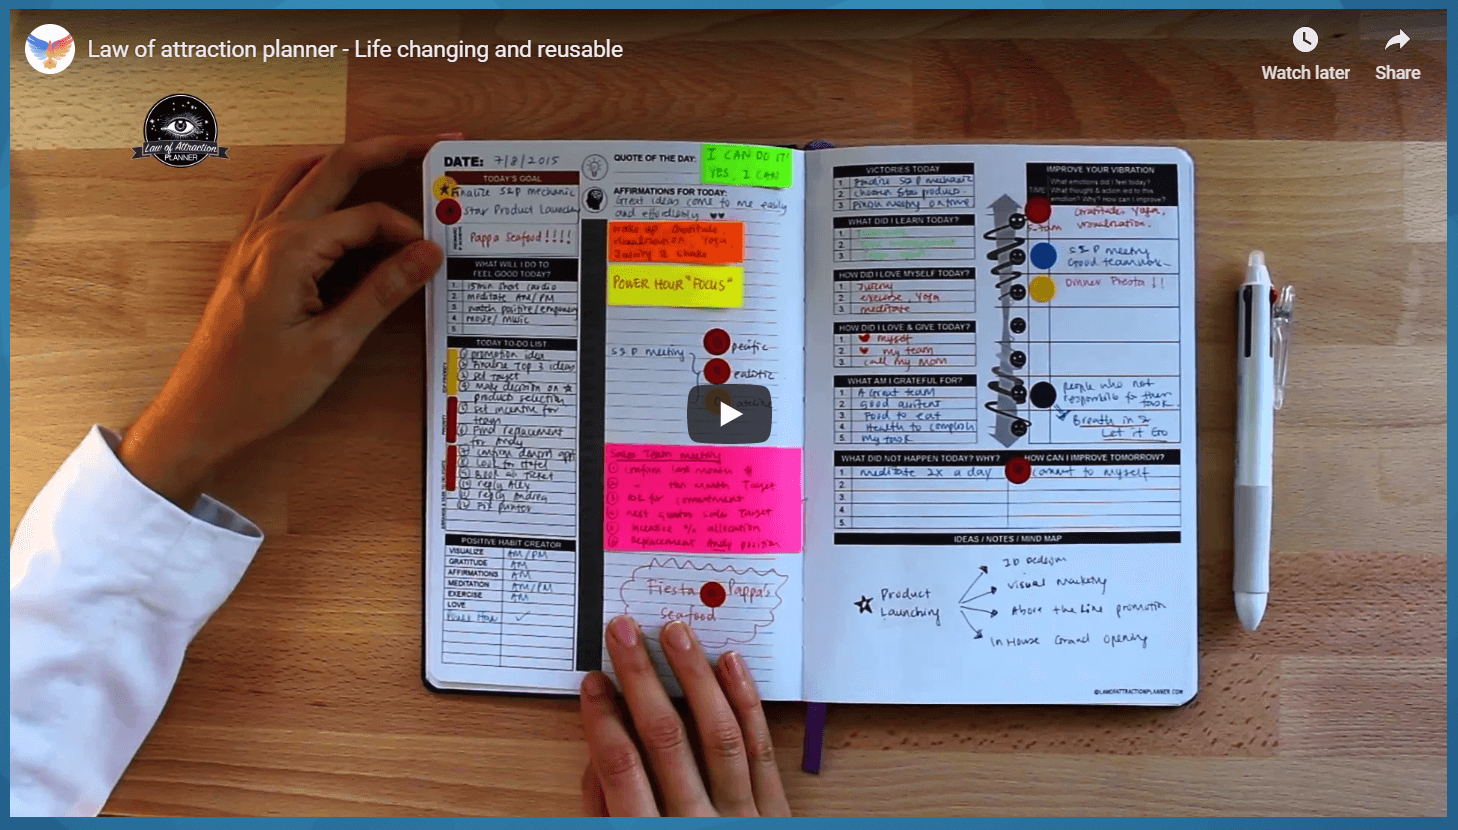 This photo shows a man's hands flipping through a colorful and well-organized Manifestation Planner.